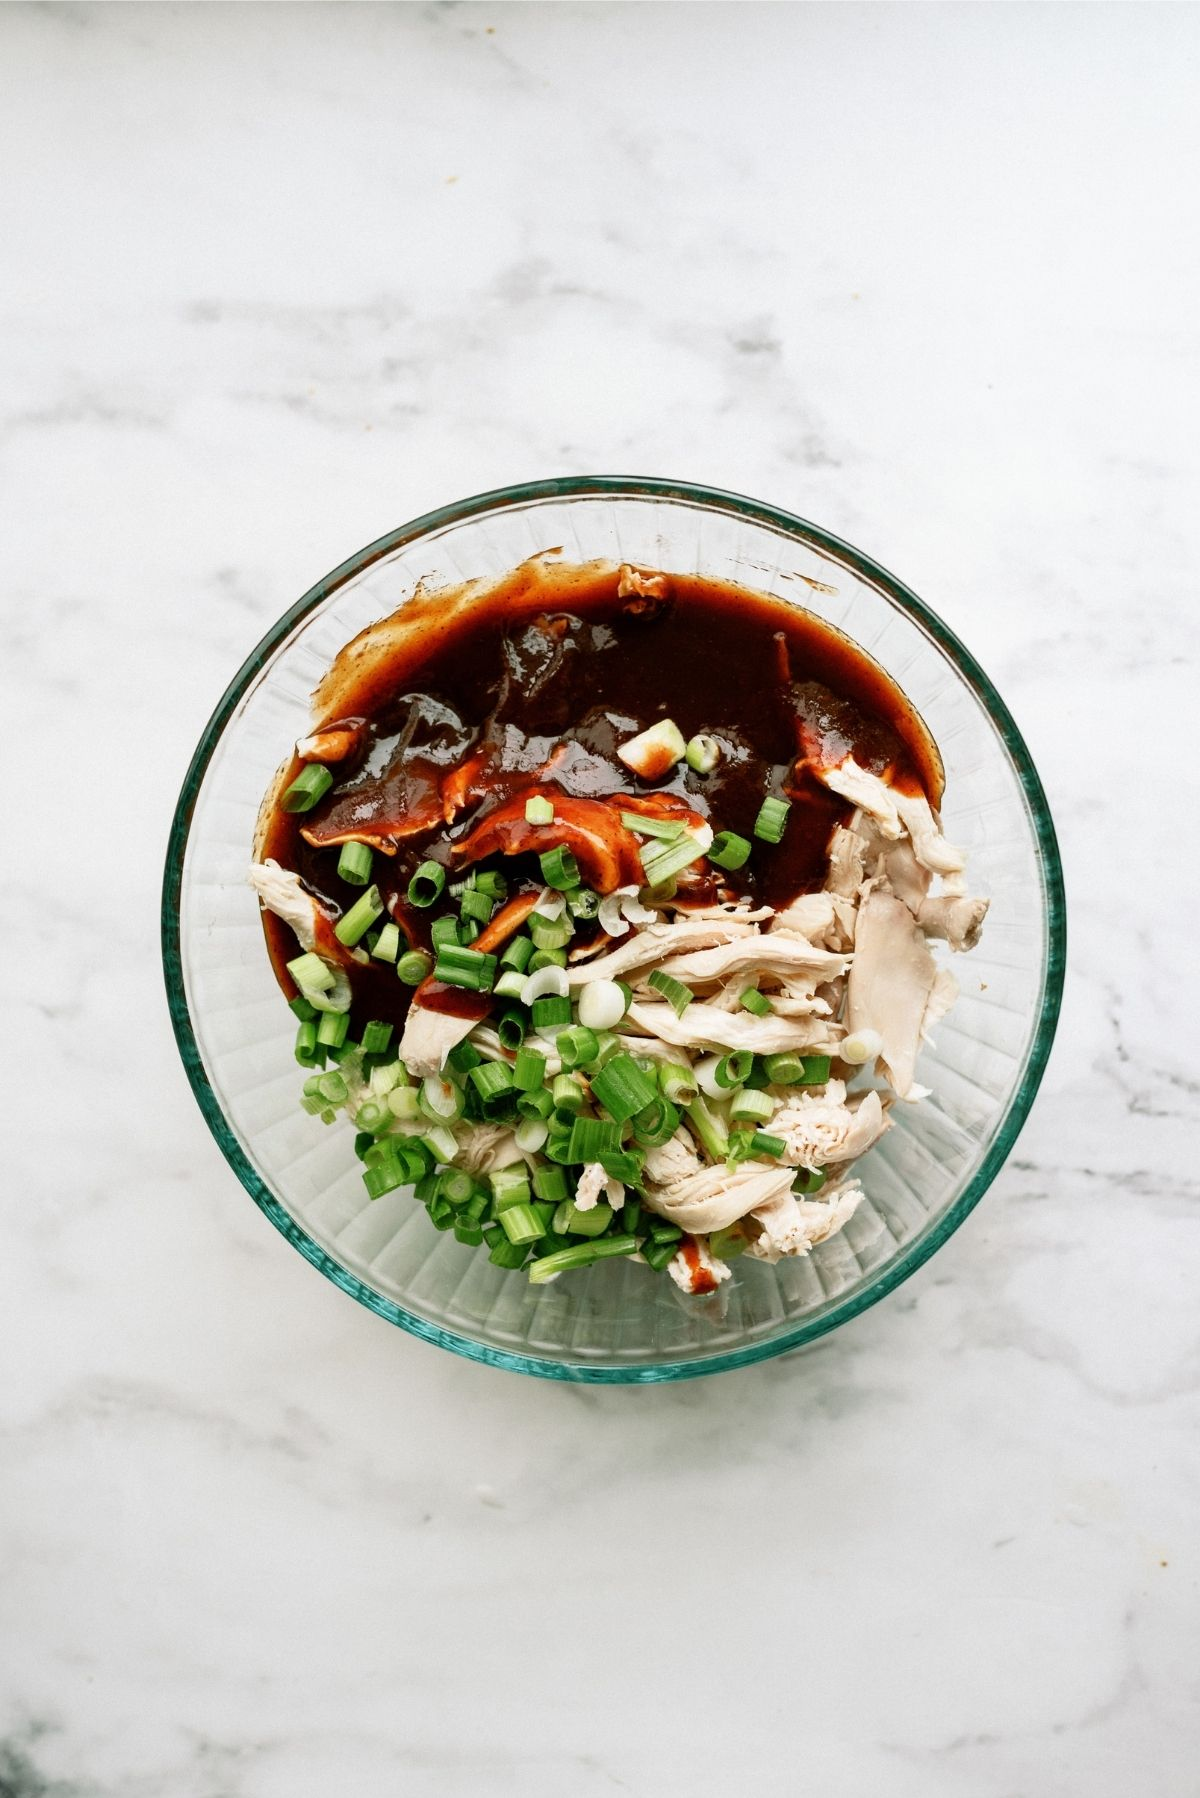 Chicken, BBQ sauce and green onions in a large mixing bowl